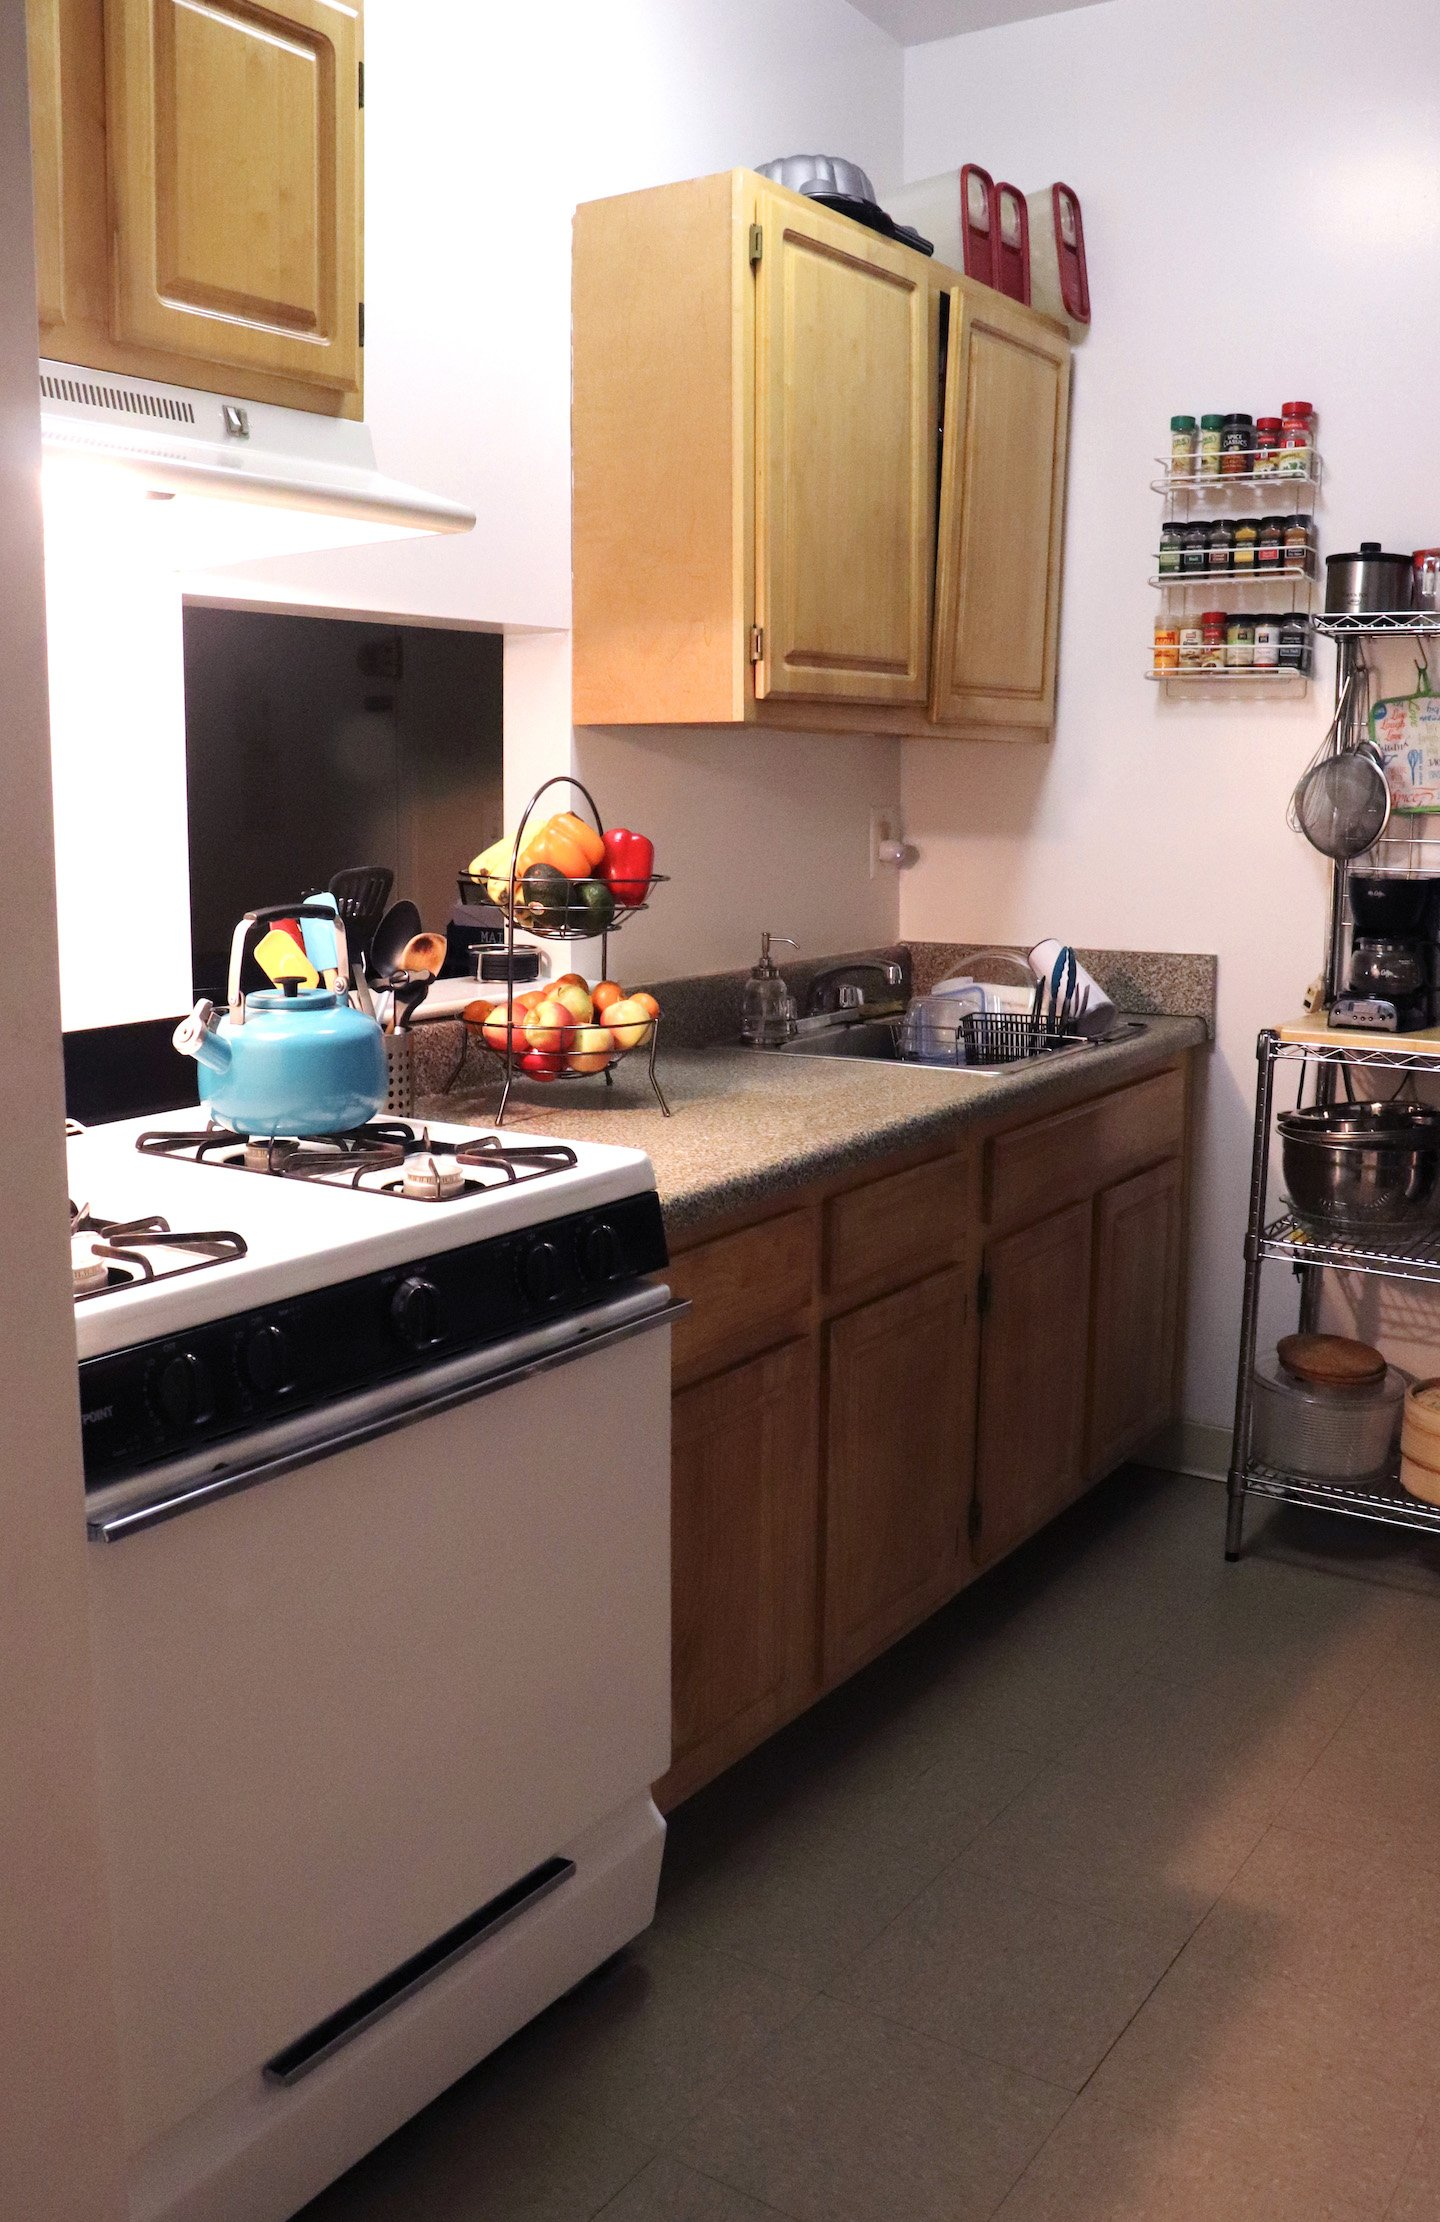 How To Create More Counter Space In Small Kitchen